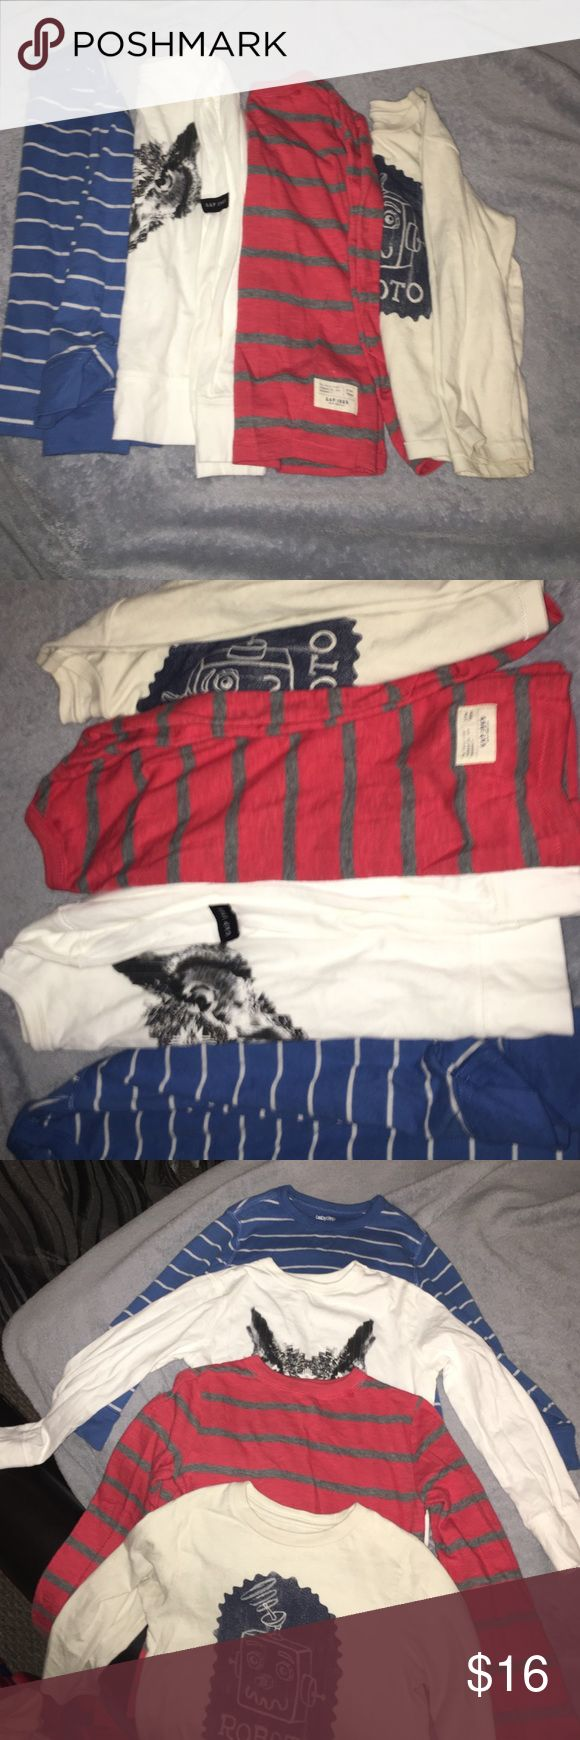 Gap/Long tee /toddler like new🌟🌟🌟🌟 Gap long sleeve tee shirts/great condition no stains !!🌟🌟🌟like new 4/5 toddler GAP Shirts & Tops Tees - Long Sleeve